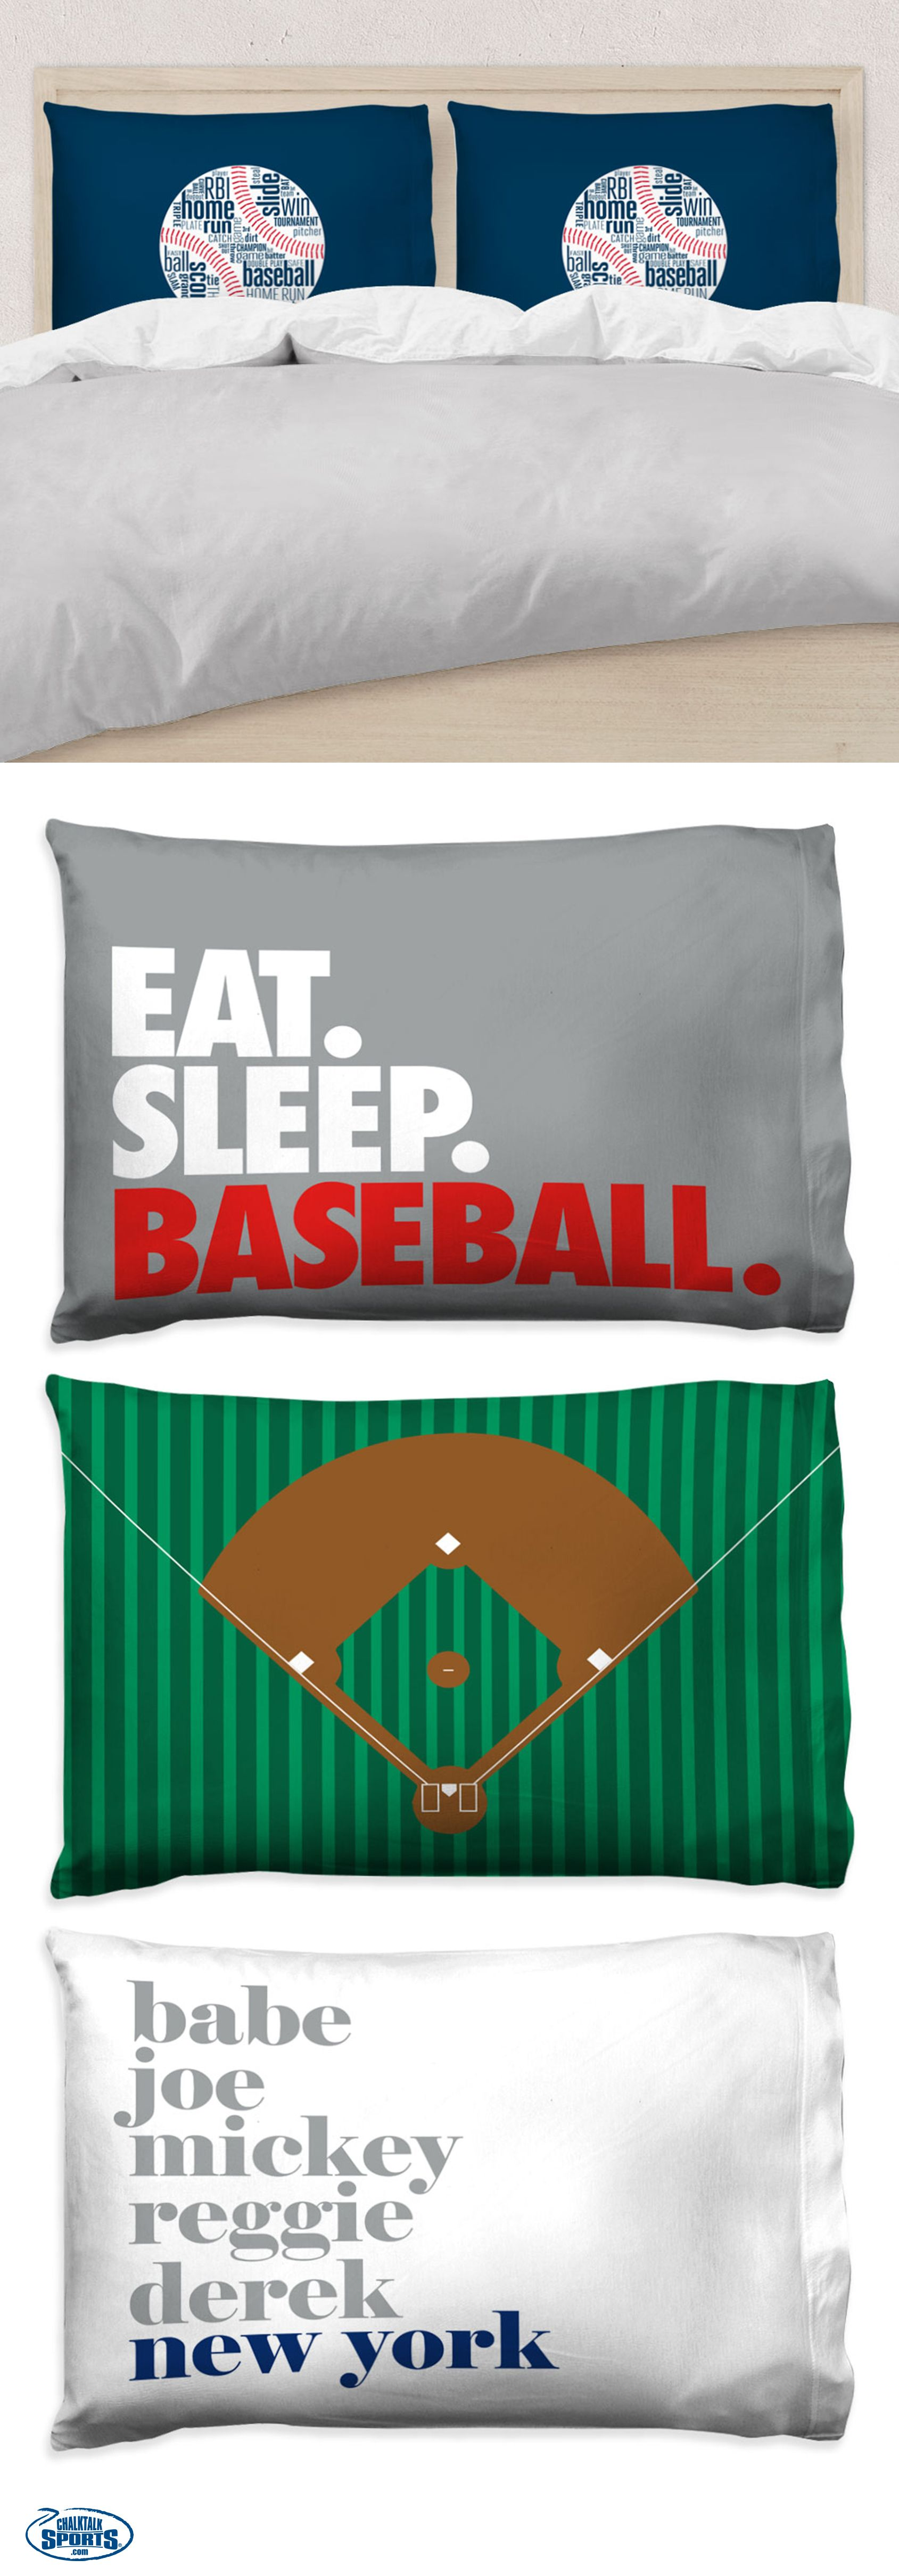 Our New Baseball Pillow Cases Are The Perfect Way To Add A Touch Of Style